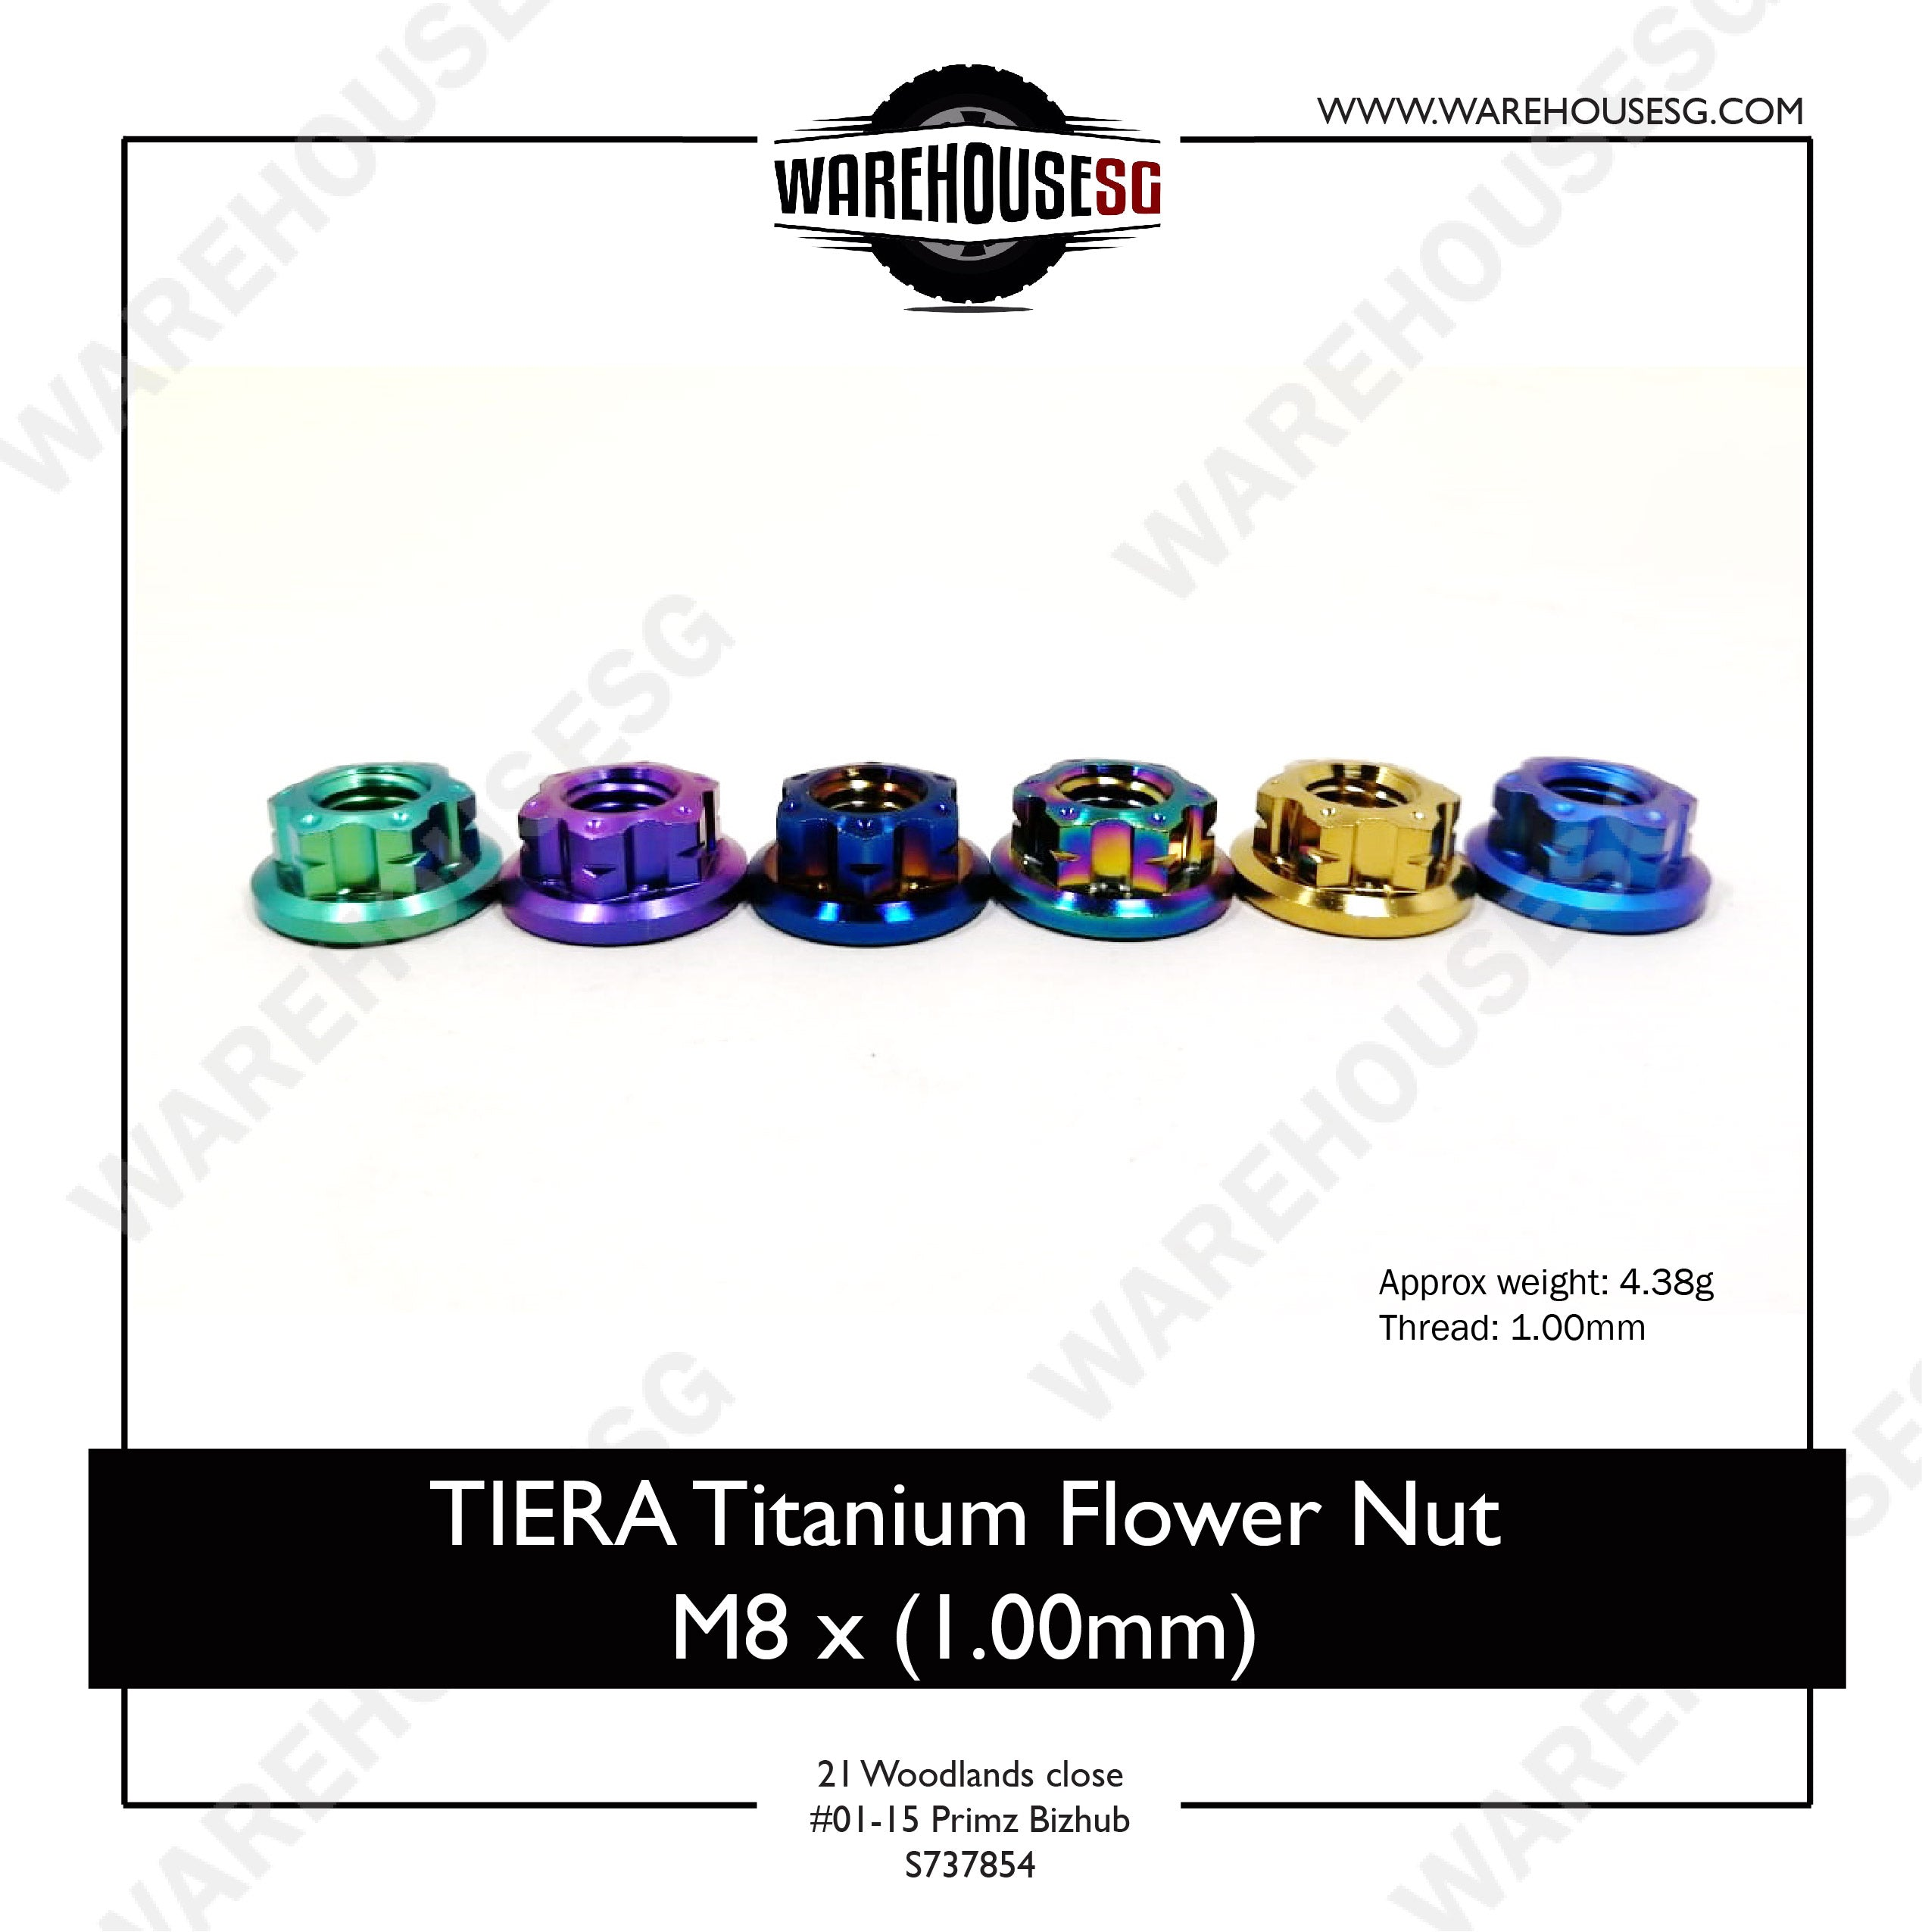 TIERA Titanium Flower Nut M8 x (1.00mm)